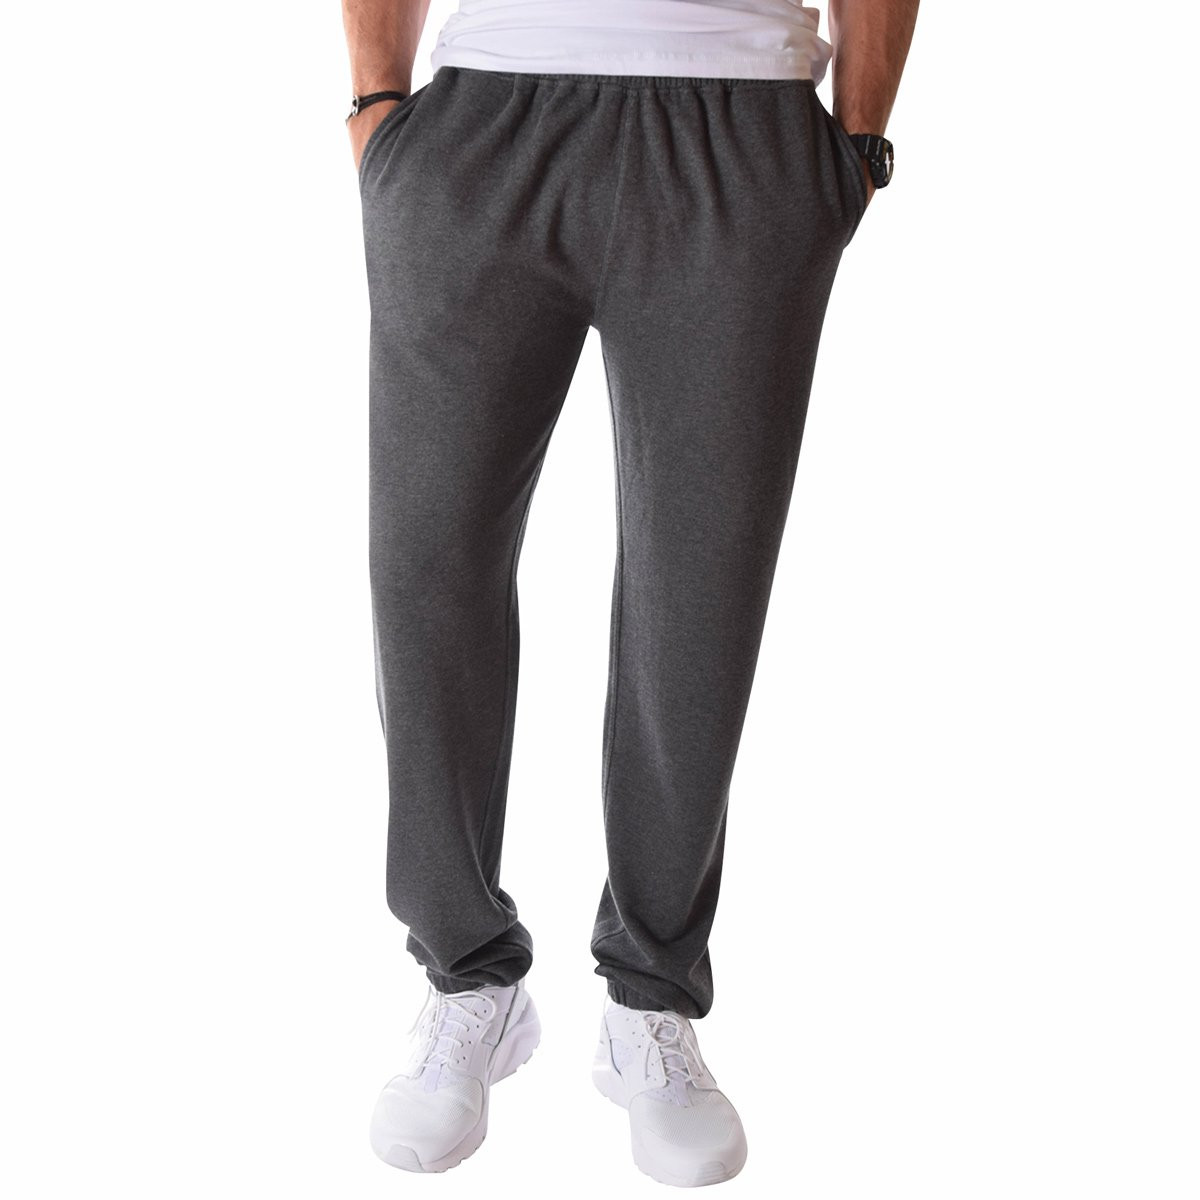 44fc8ac5 Men's Tall Sweatpants | Tall inseams